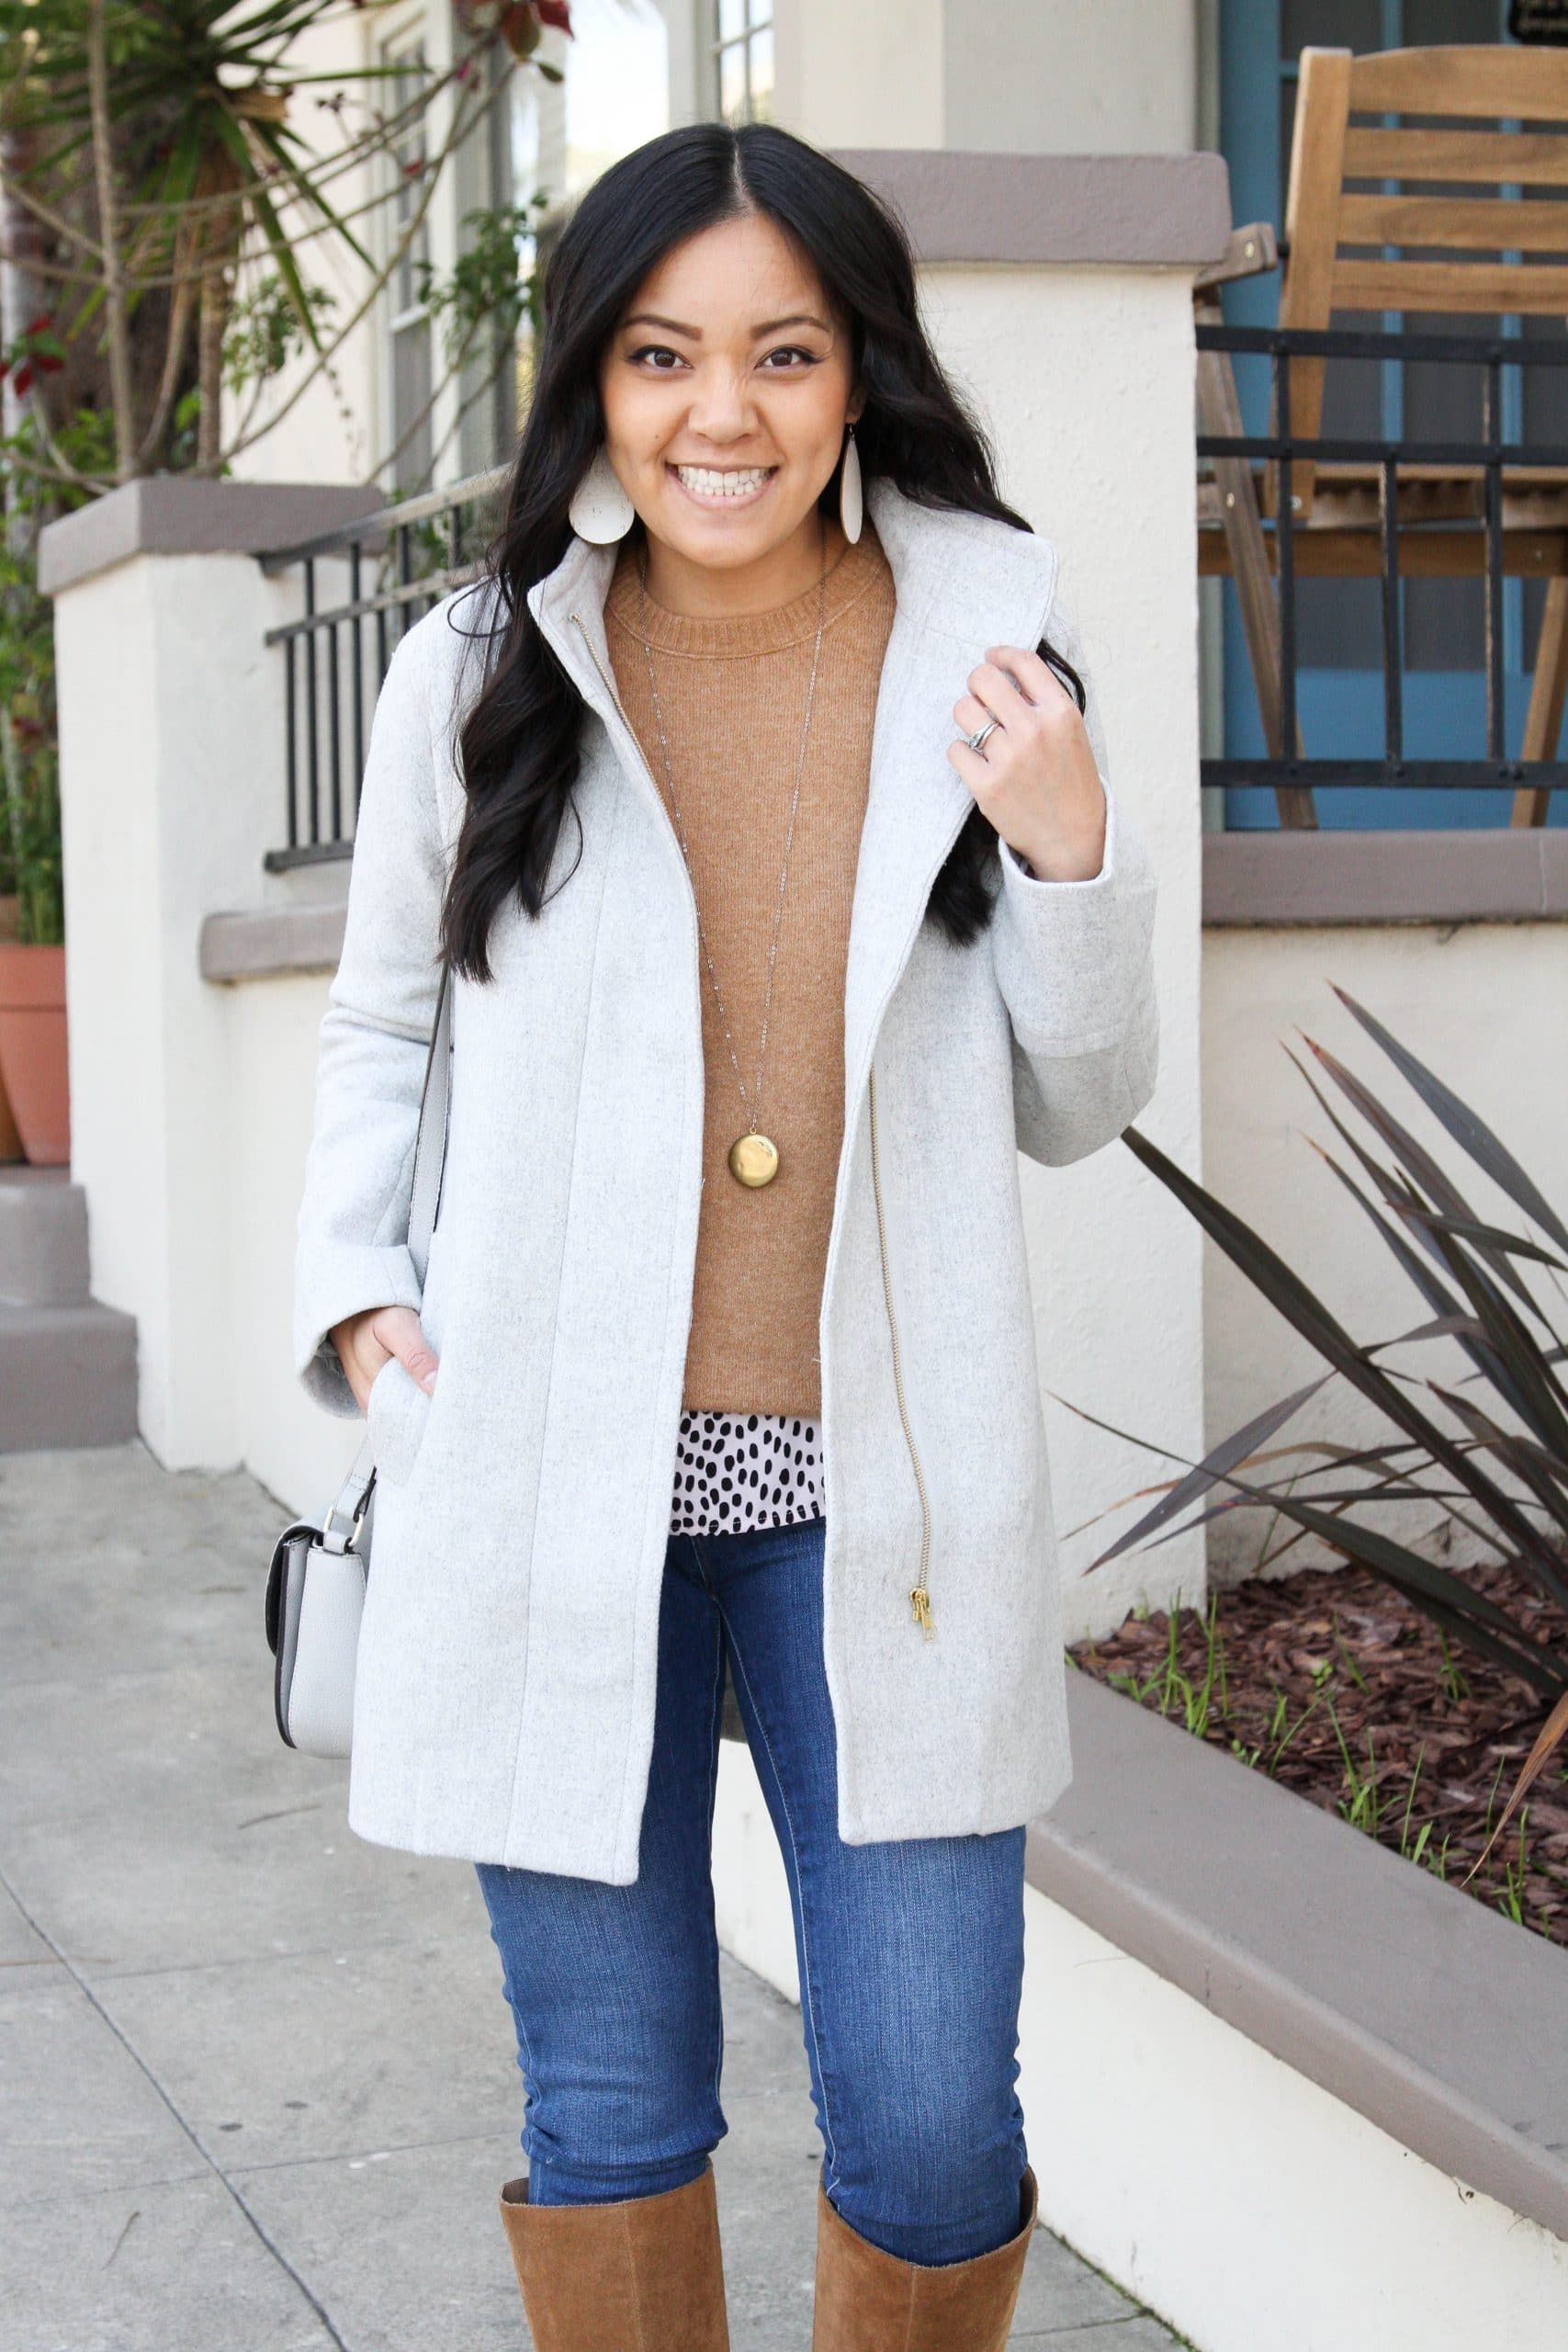 Winter Coat Layering Outfit: cream wool coat + tan crewneck sweater + animal print top + skinny jeans + cognac suede boots + gray bag + gold pendant necklace